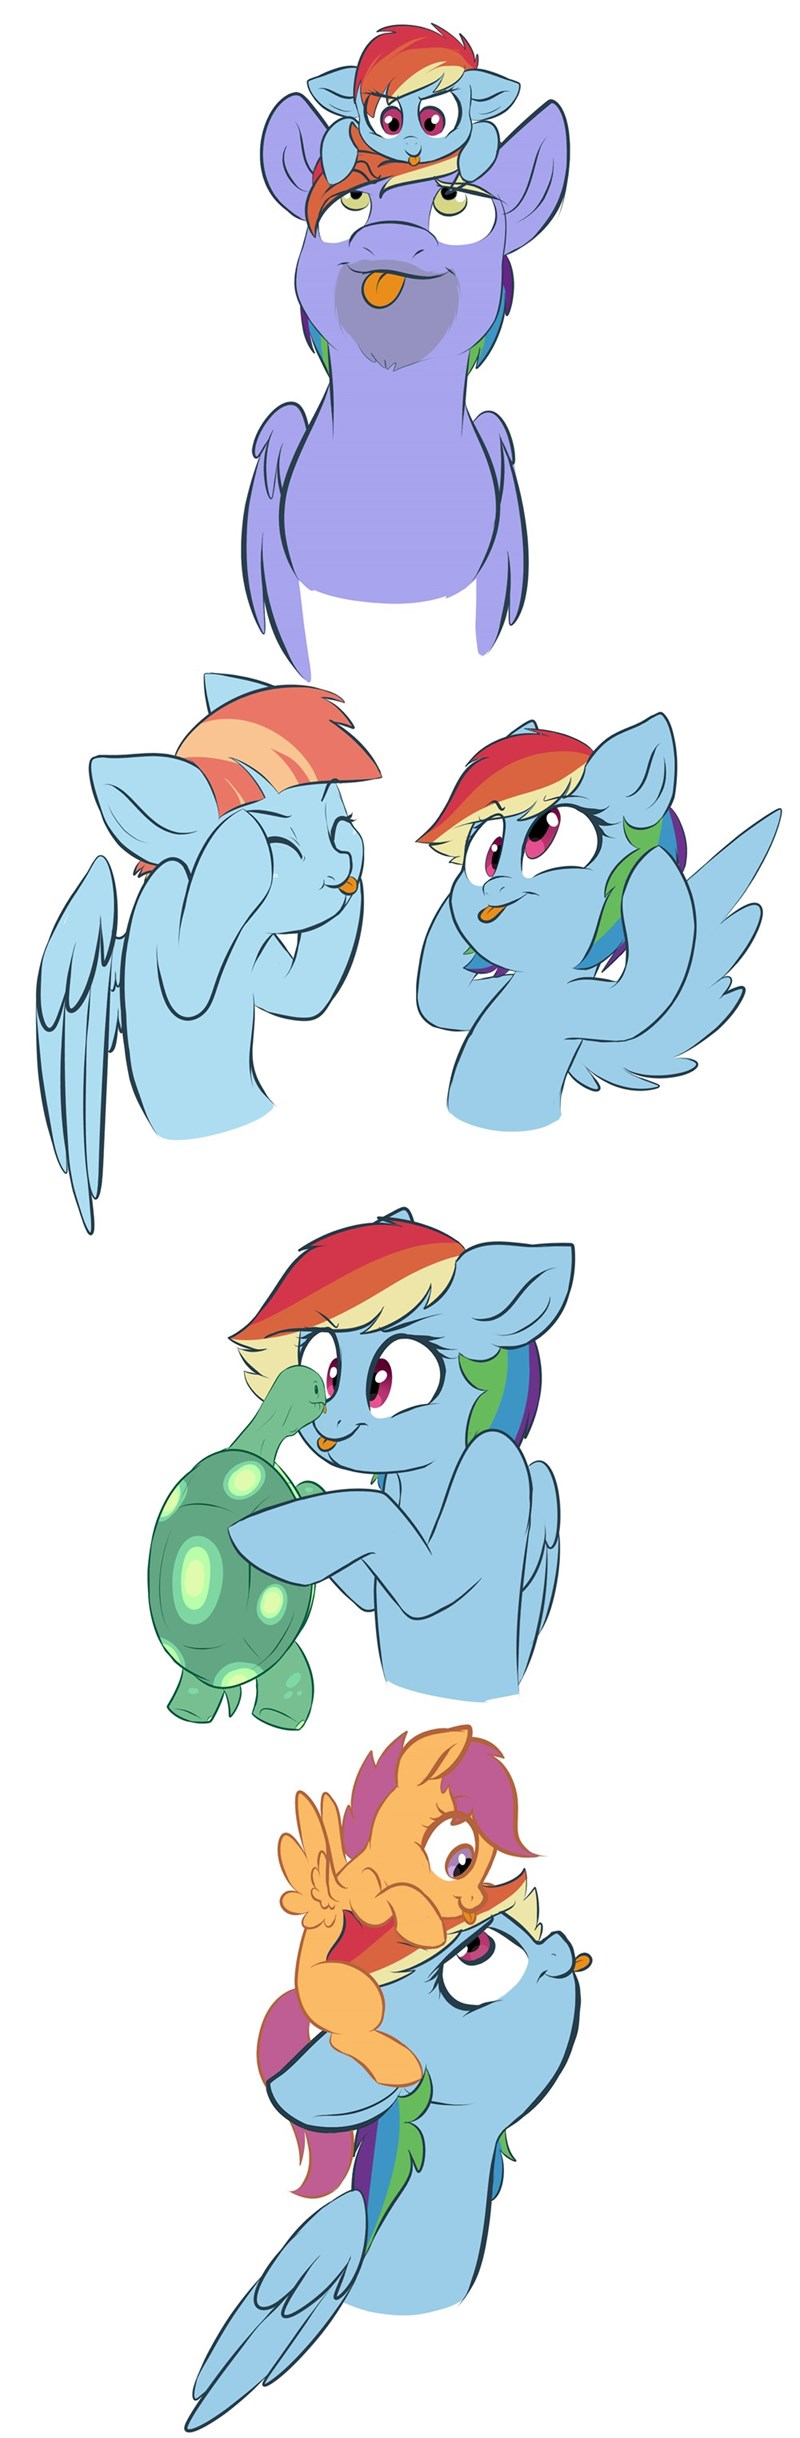 blep bow hothoof doodle-mark windy whistles tank comic Scootaloo rainbow dash - 9183169792